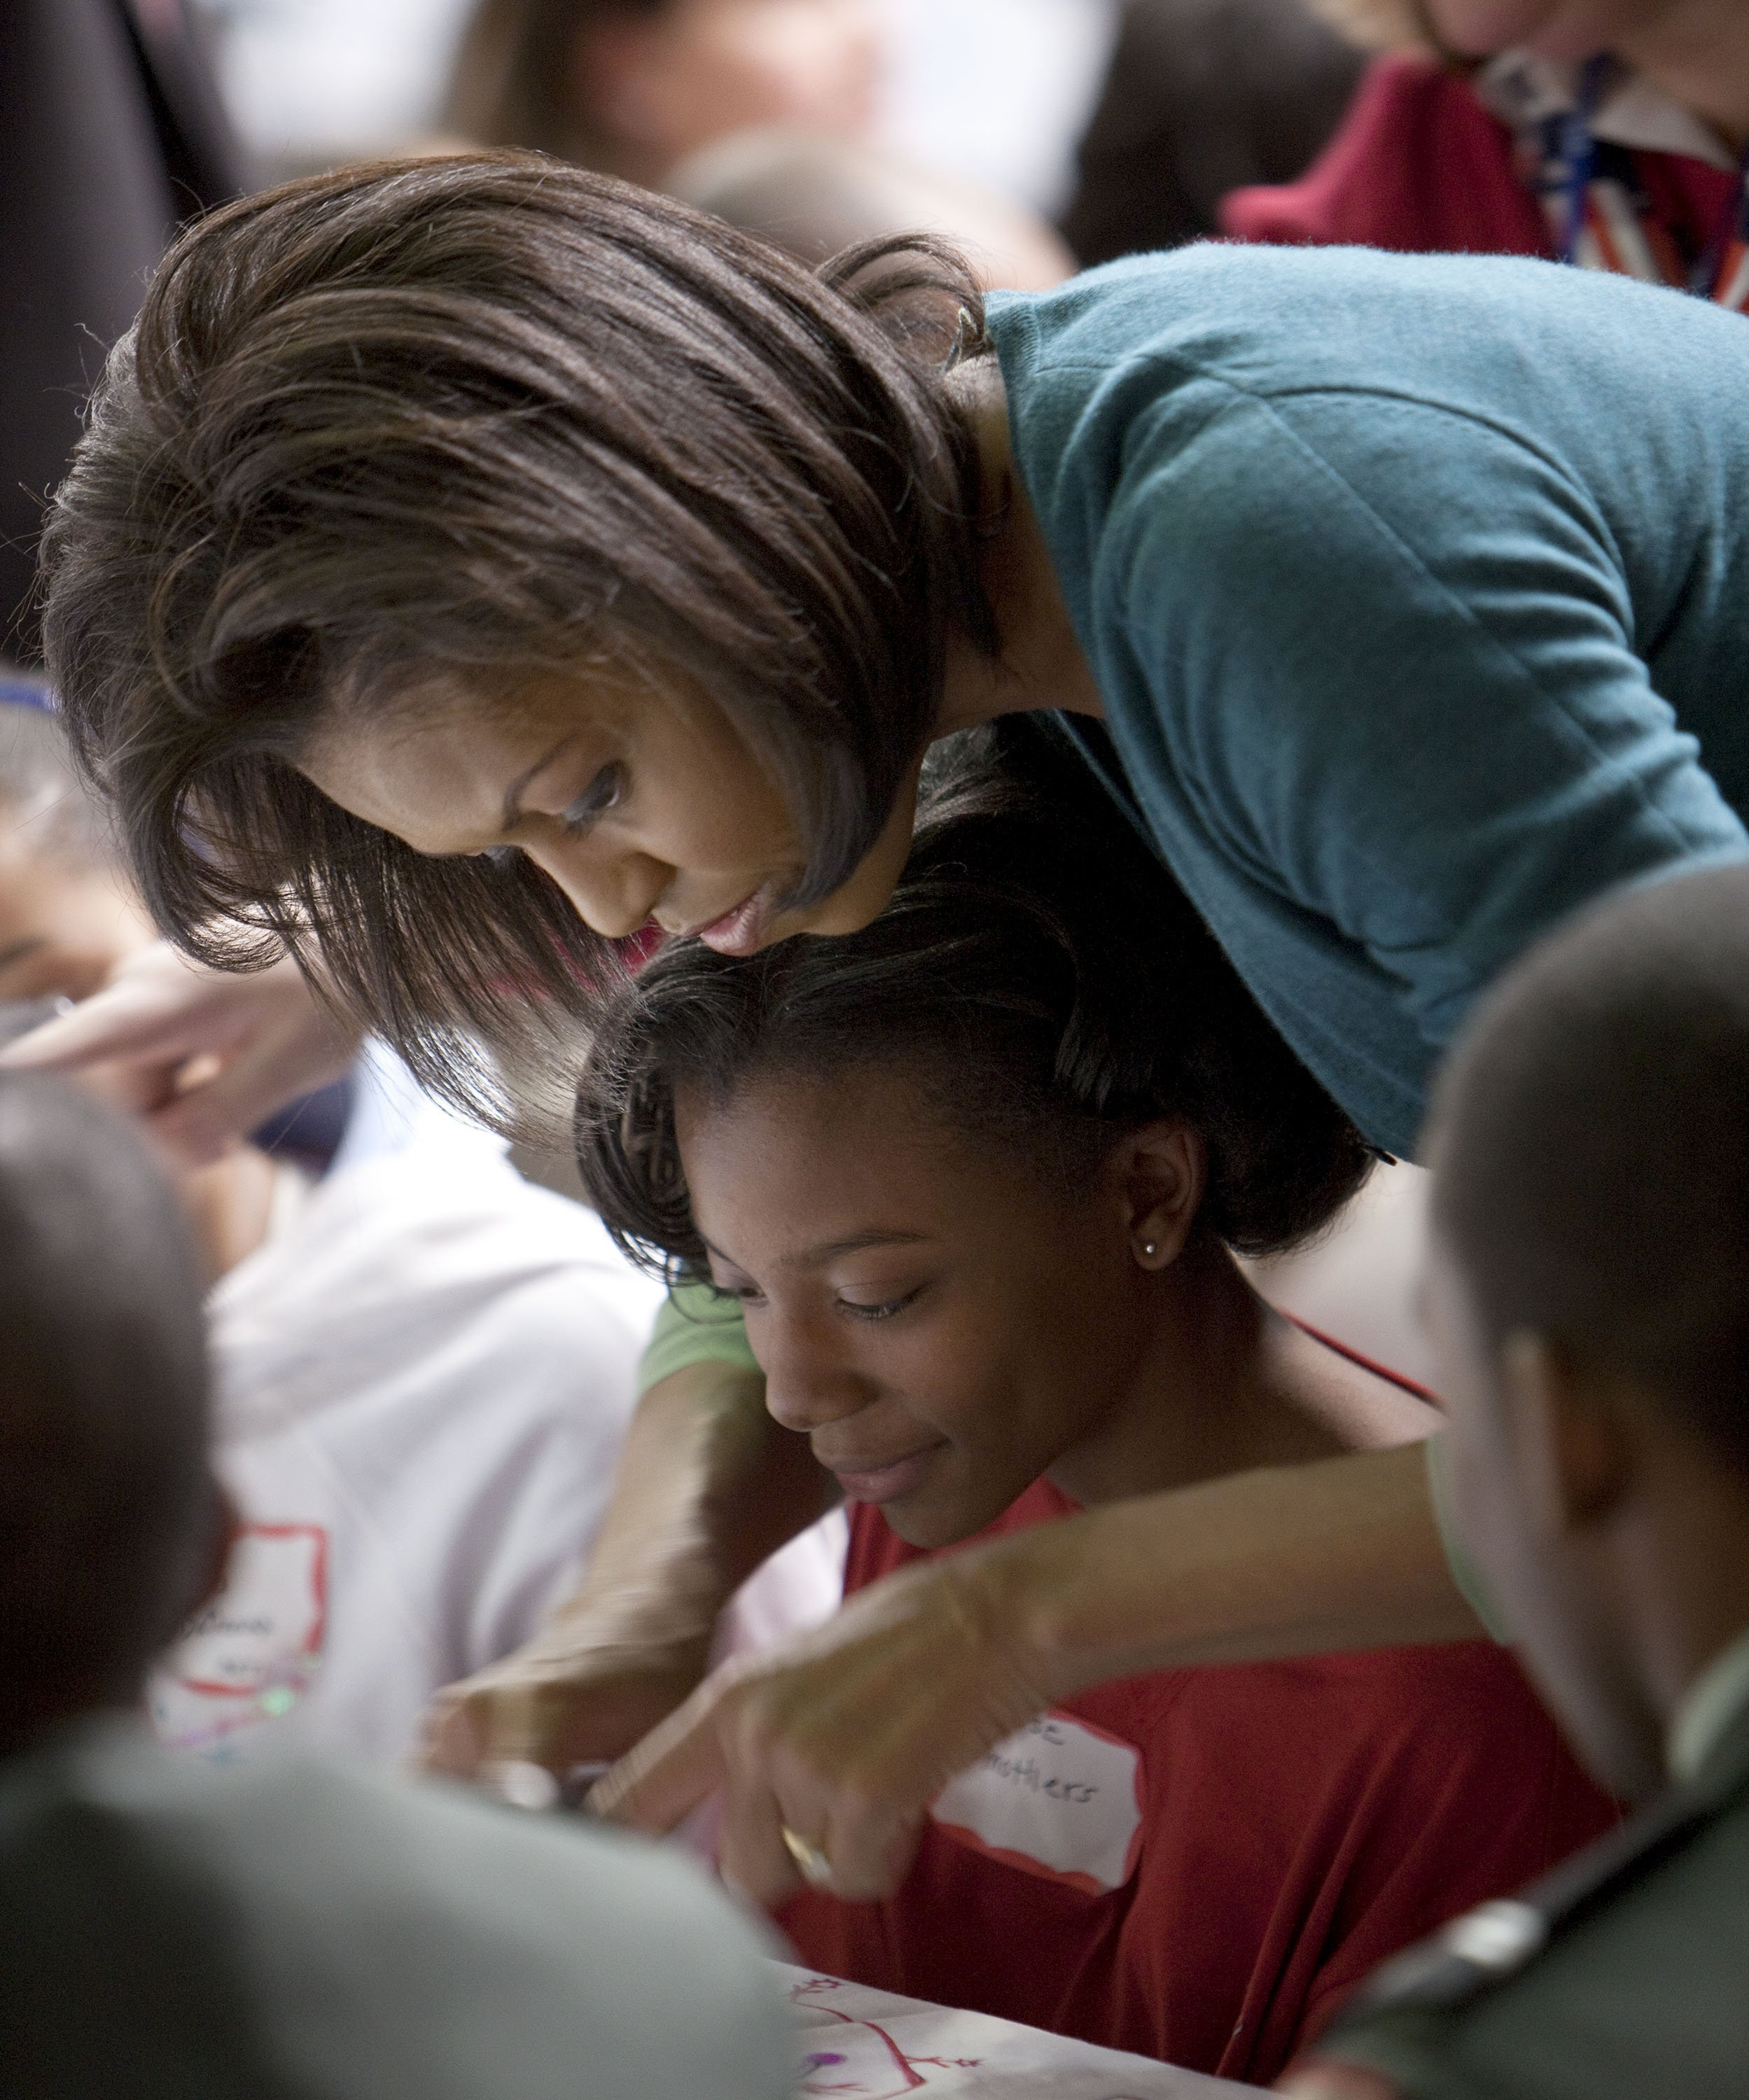 Michelle Obama helps a girl at Calvin Coolidge High School where students, military families, and volunteer service groups are working on various projects supporting the troops on January 19, 2009, in Washington, DC. | Source: Getty Images.